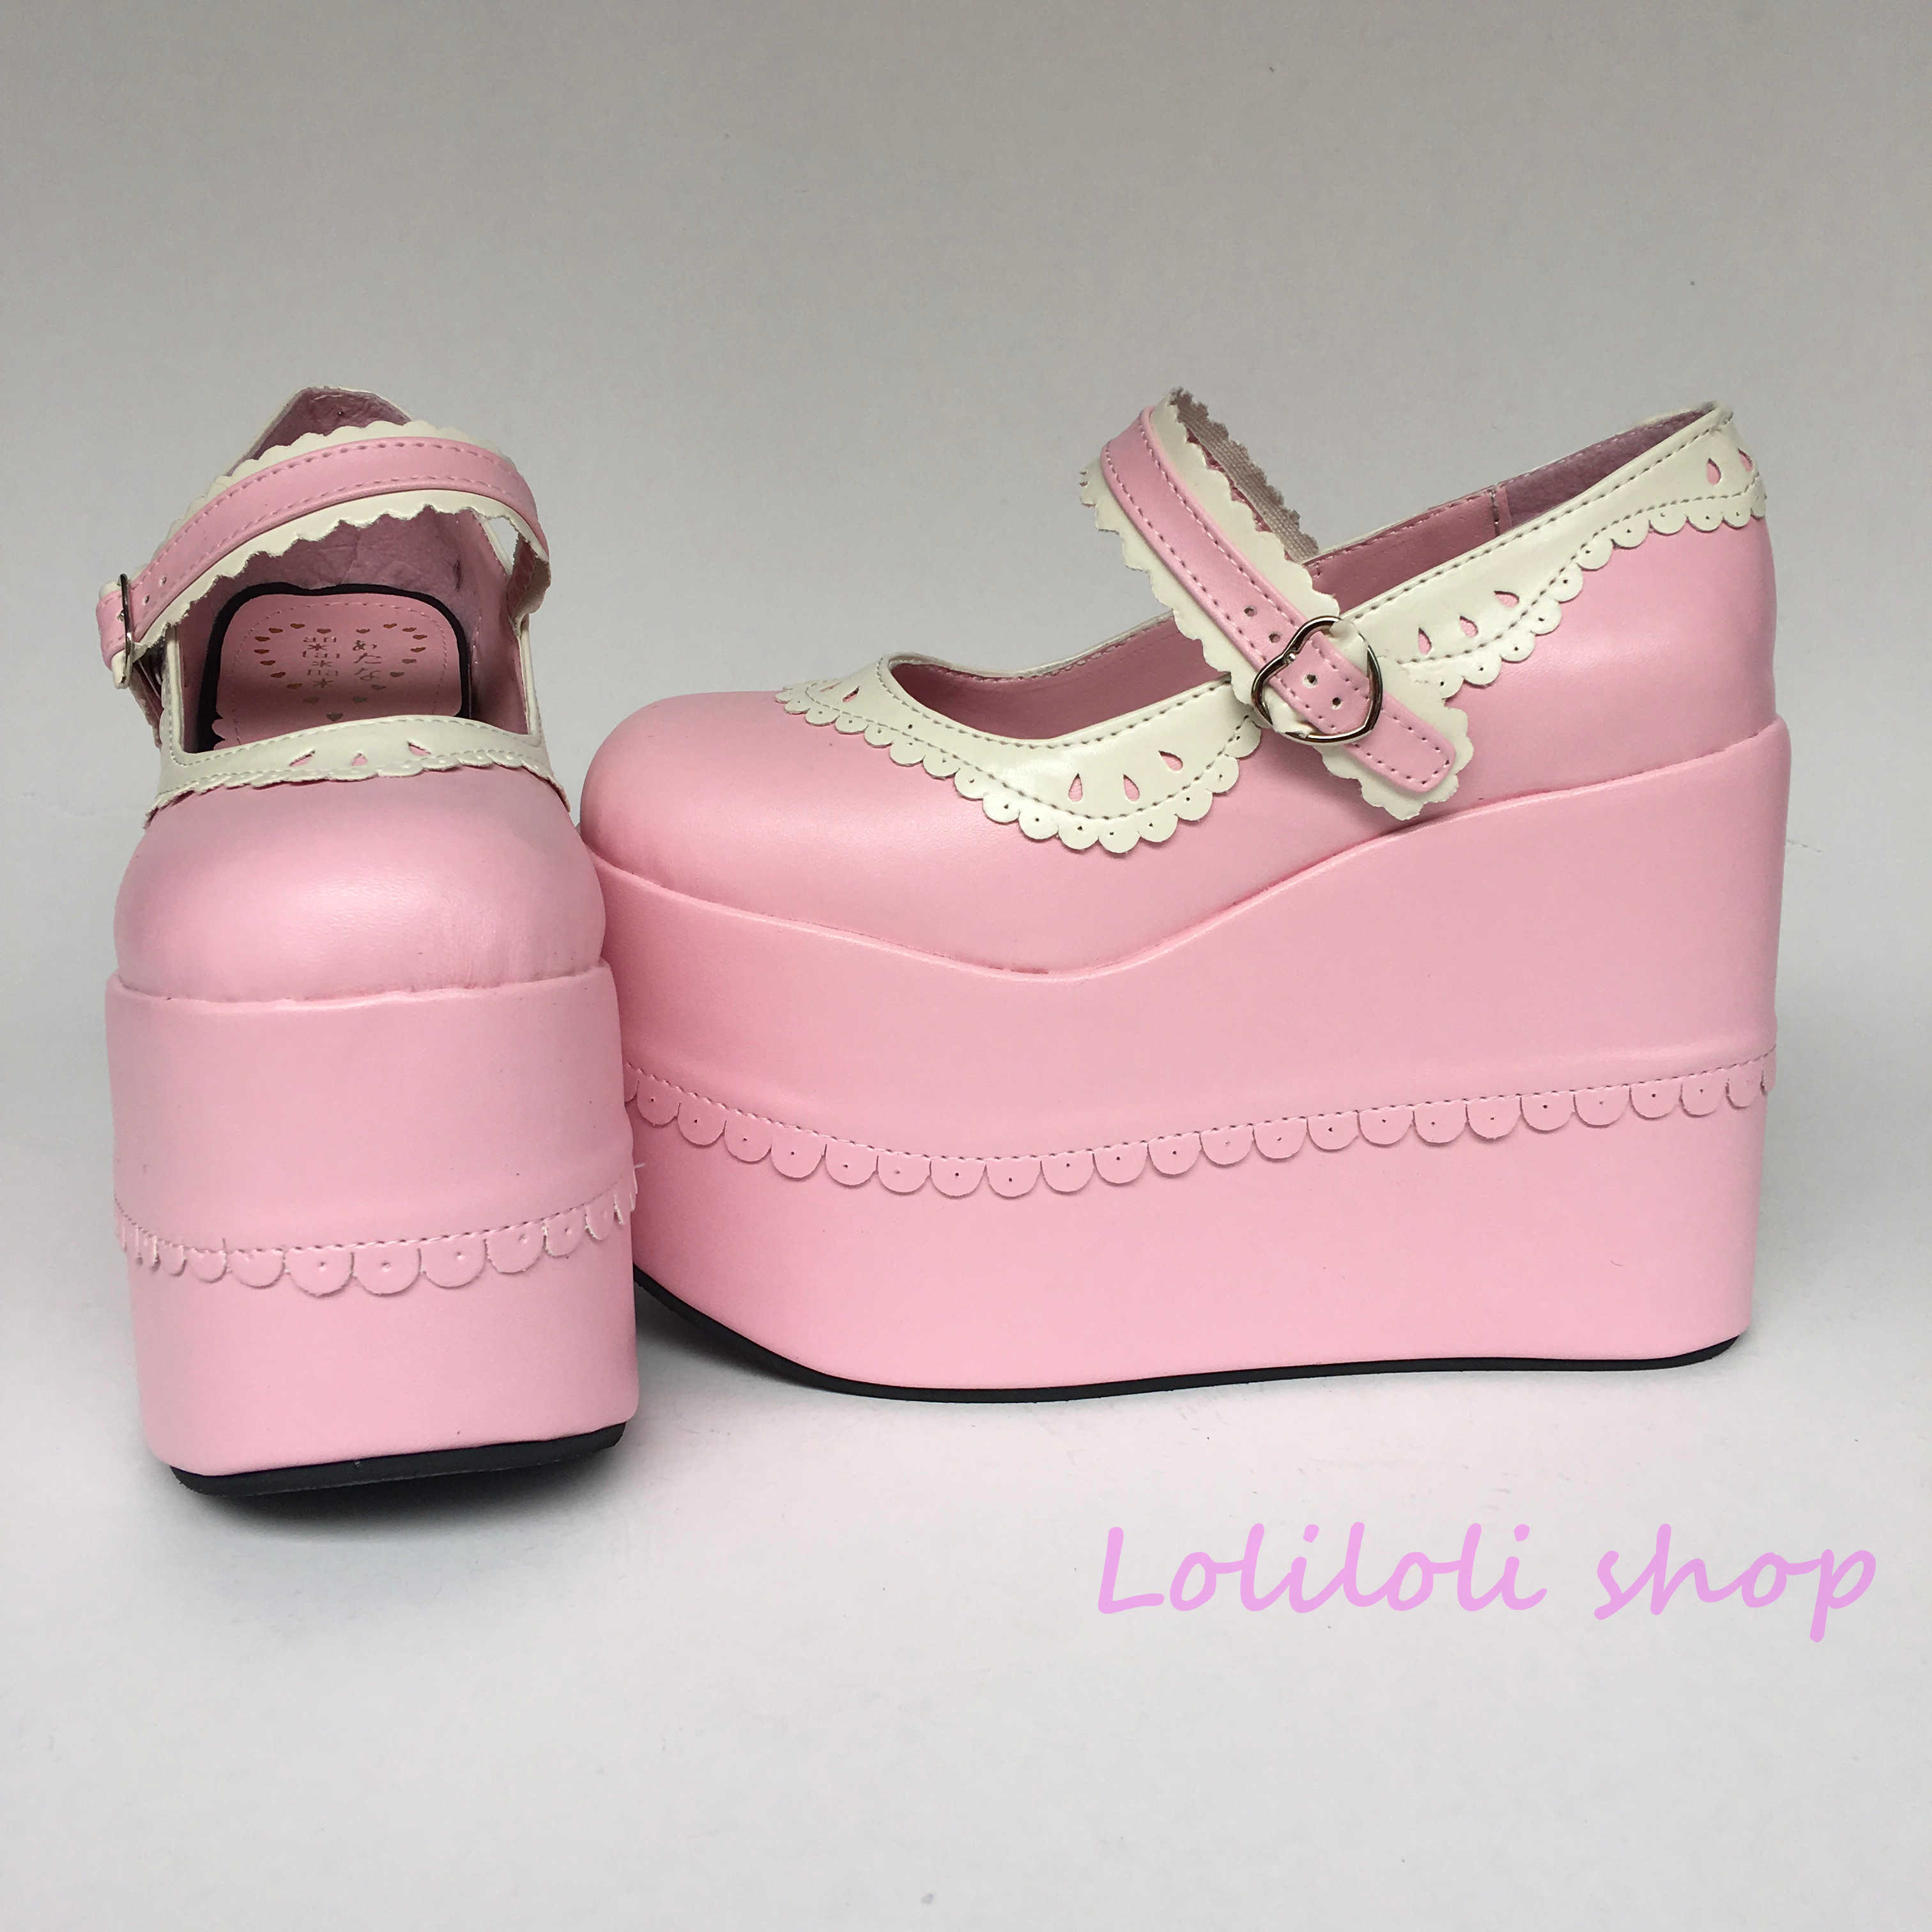 Princess sweet lolita shoes Lolilloliyoyo antaina Japanese design cos shoes custom thick bottom pink PU flat platform shoes 9955 цена